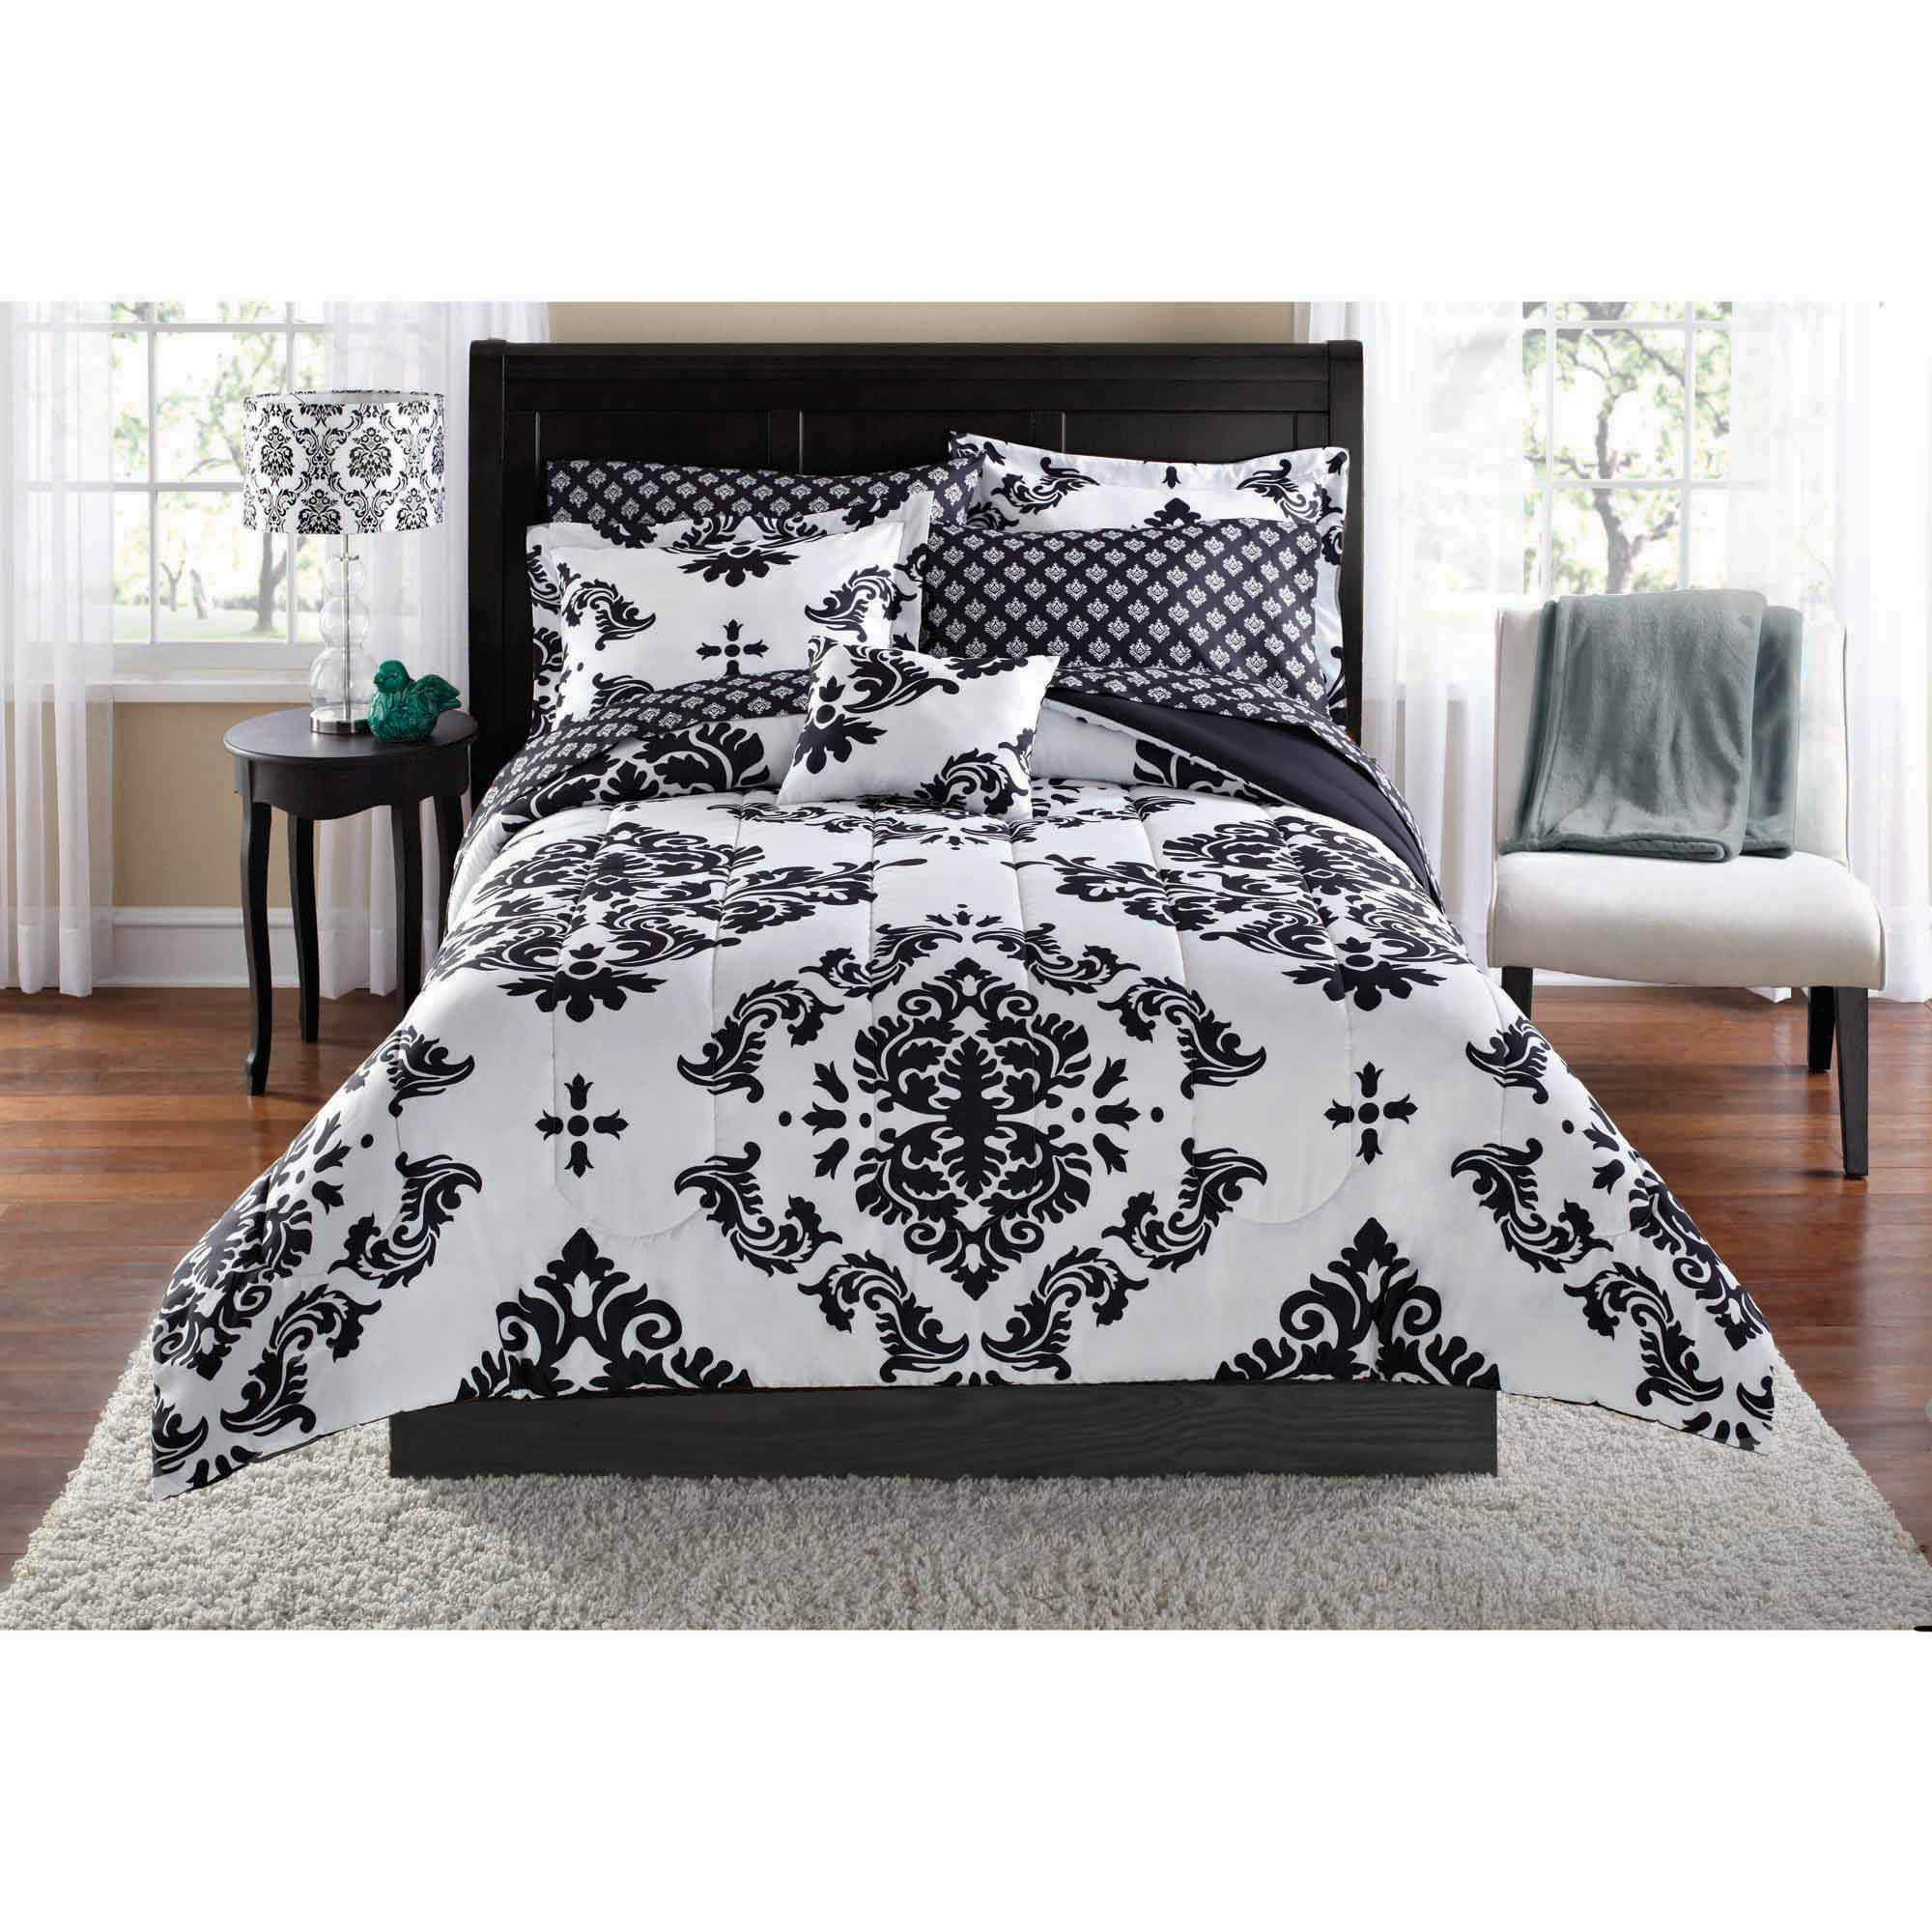 Mainstays Classic Noir Bed in a Bag Bedding Set Walmartcom